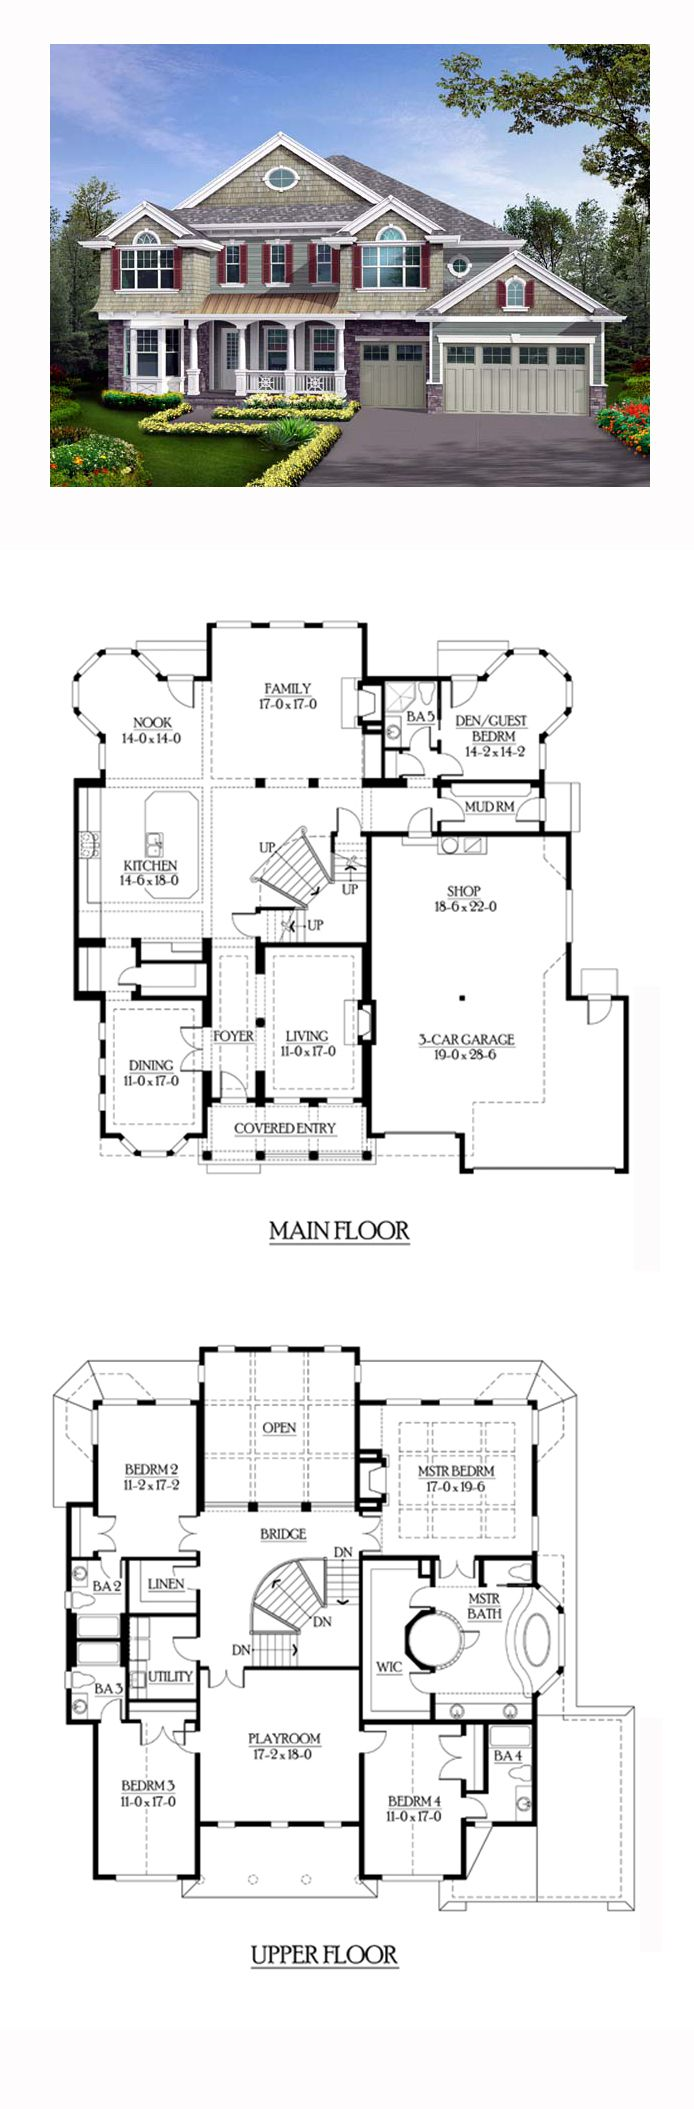 shingle style cool house plan id chp 39375 total living